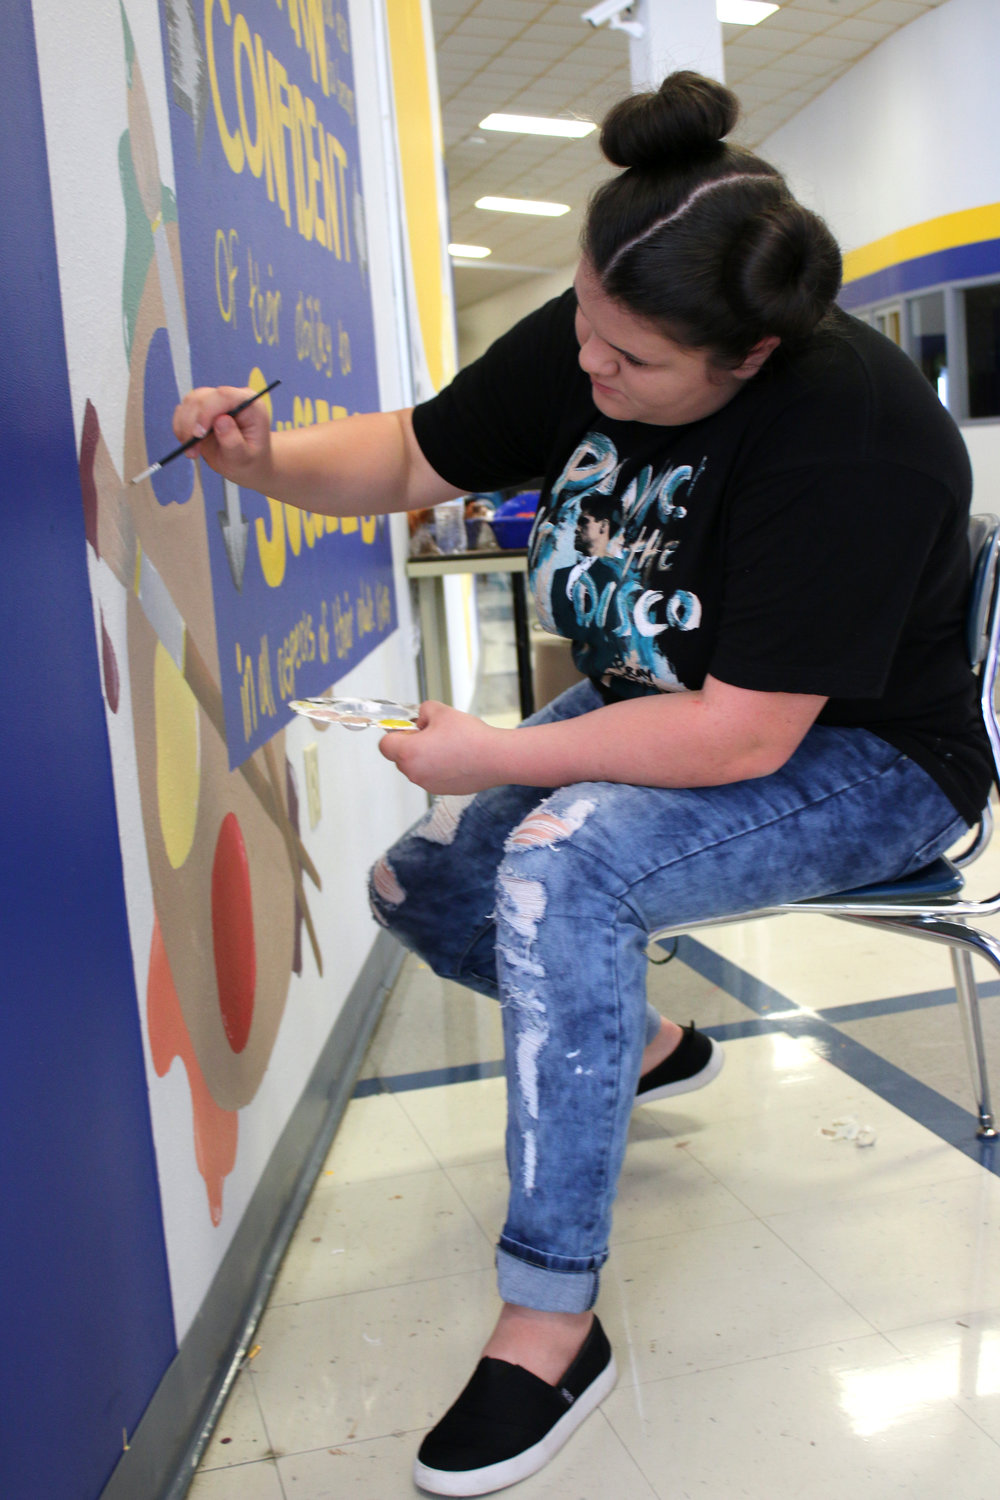 NLHS senior and Art Club president Kareagin Allison puts the finishing touches on the mural that is now displayed in the high school foyer.